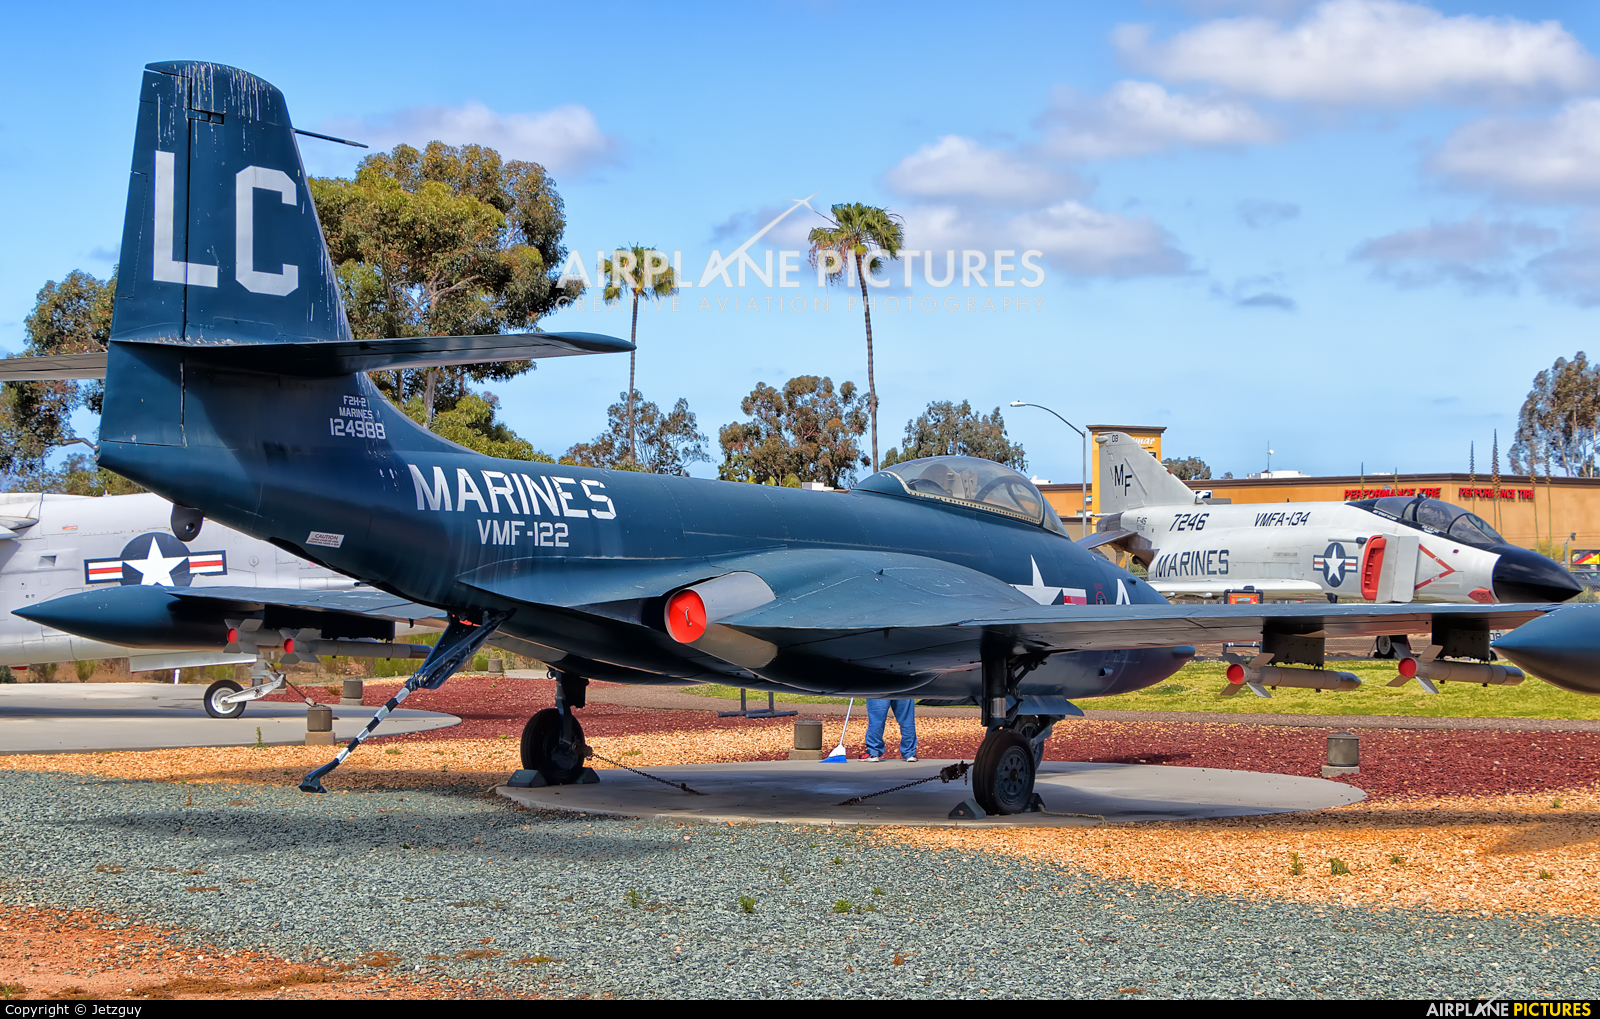 USA - Marine Corps 124988 aircraft at Miramar MCAS - Flying Leatherneck Aviation Museum